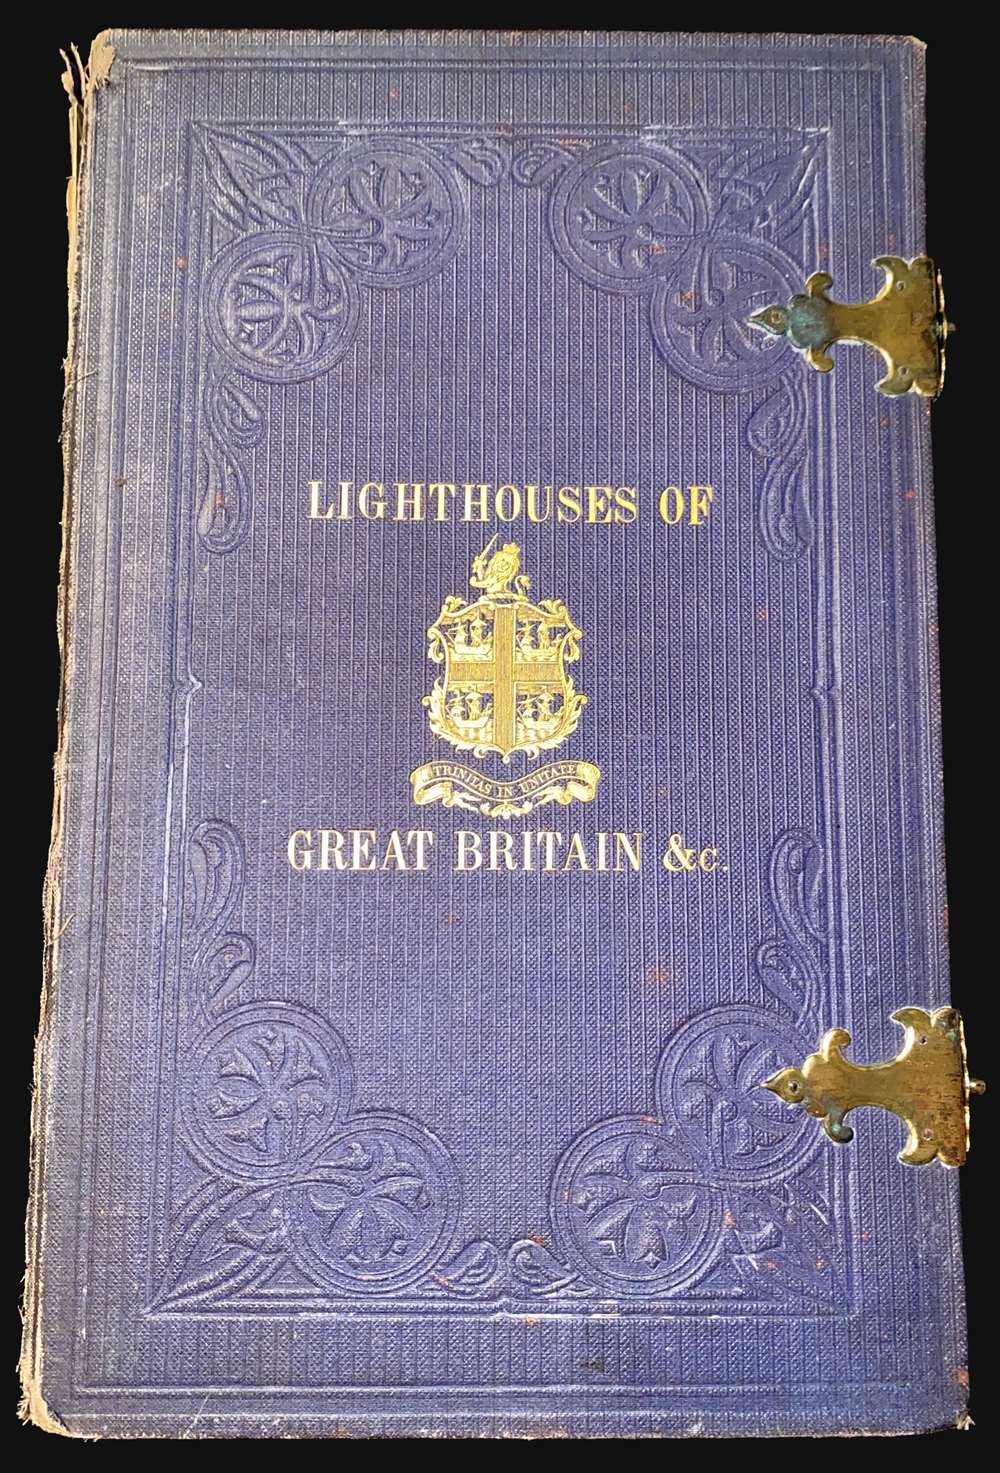 A Chart Exhibiting the Lighthouses and Light Vessels on the Coasts of Great Britain and Ireland and also those on the N.W. Coasts of Europe between Ushant and Bergen. Published by order of the Honble the Corporation of Trinity House, constructed by A. G Findlay. - Alternate View 1